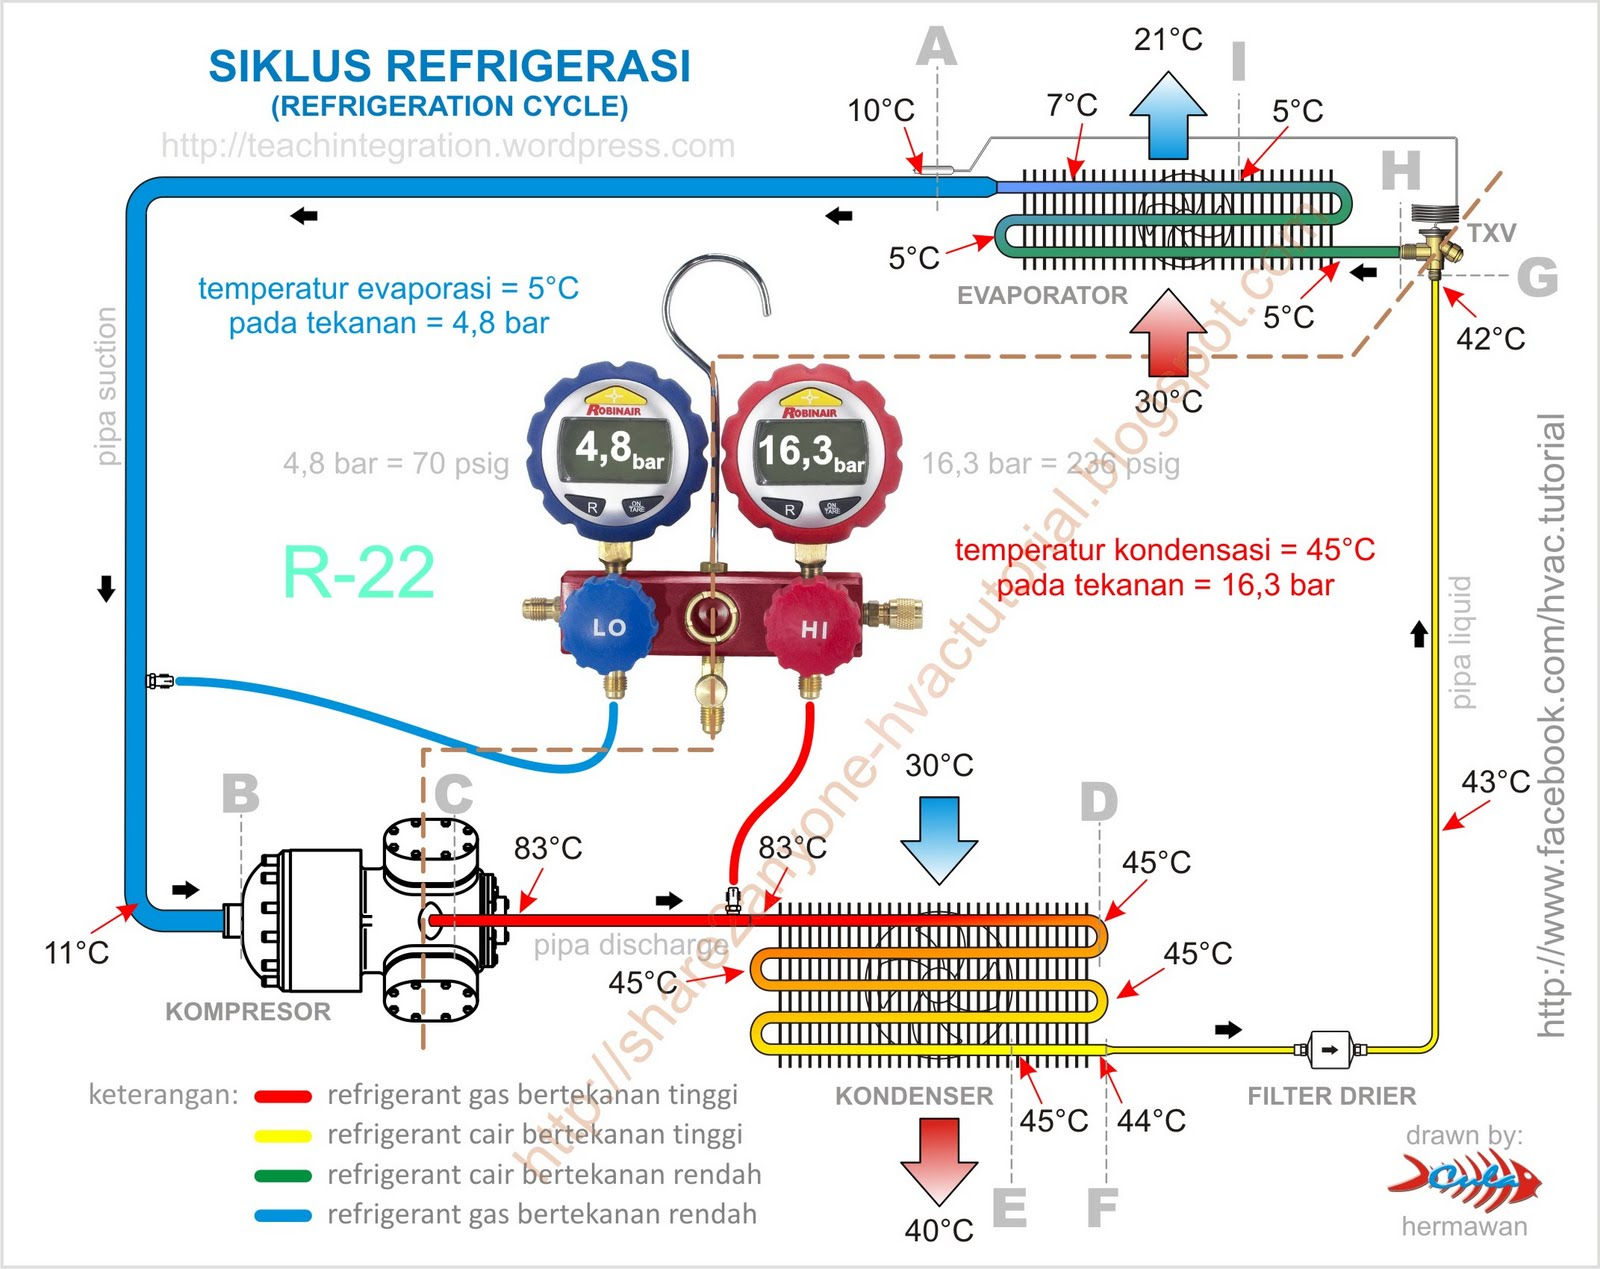 Videos Refrigeration Cycle together with Motorcycle Specs Demystified together with Post basic Motorcycle Parts Diagram 516464 furthermore Piping and instrumentation diagram as well D 01 cr fon. on basic motor controls diagrams